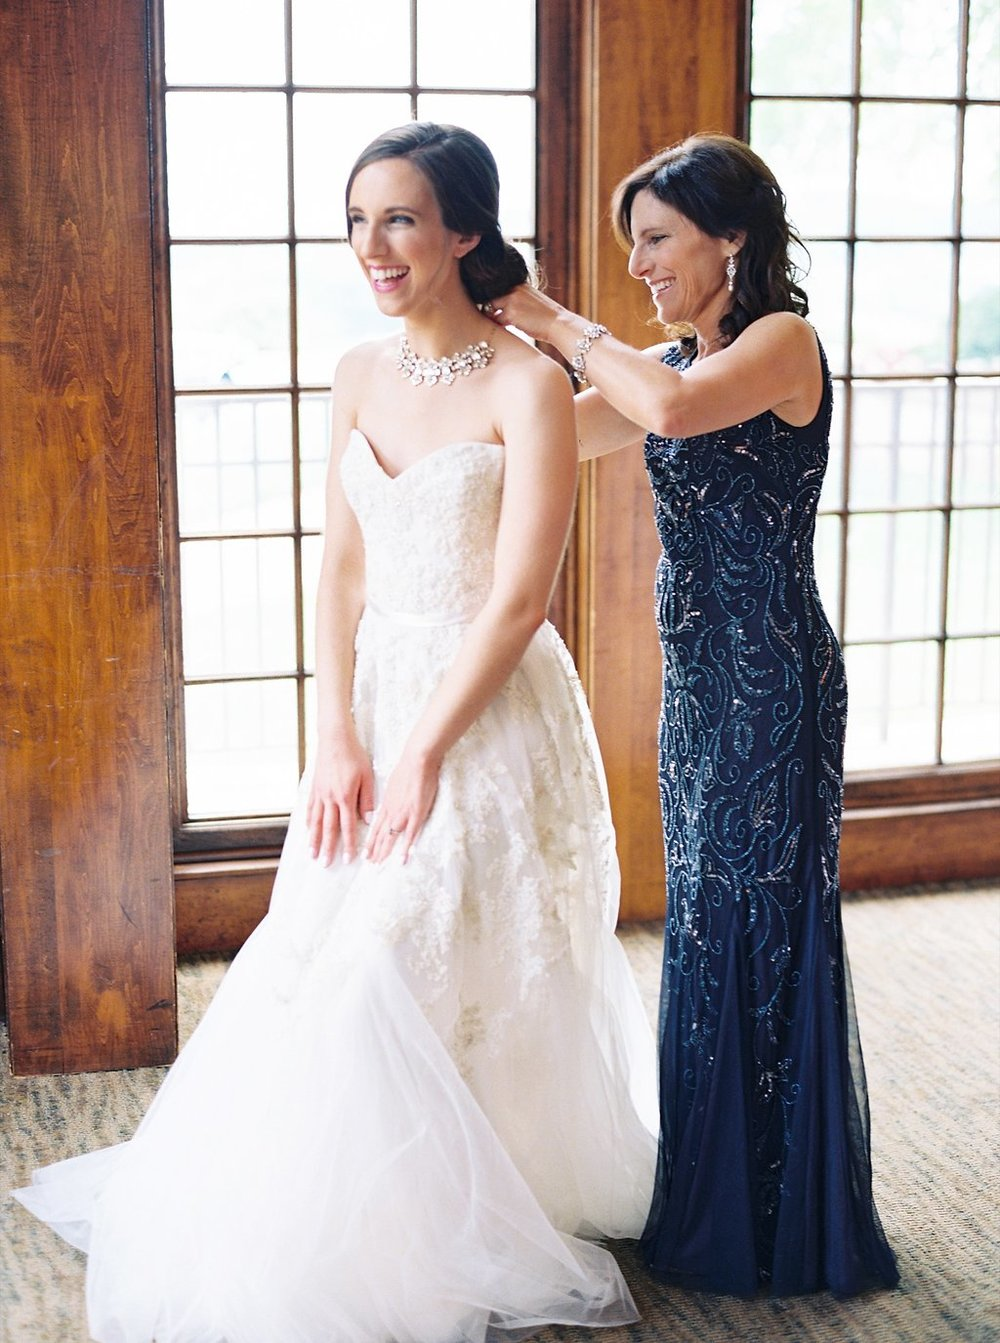 Sweet Bride and Mother of the Bride Getting Ready Photos | Reem Acra Wedding Gown | Simply Jessica Marie's Southern Wedding | Photo by Perry Vaile Photography